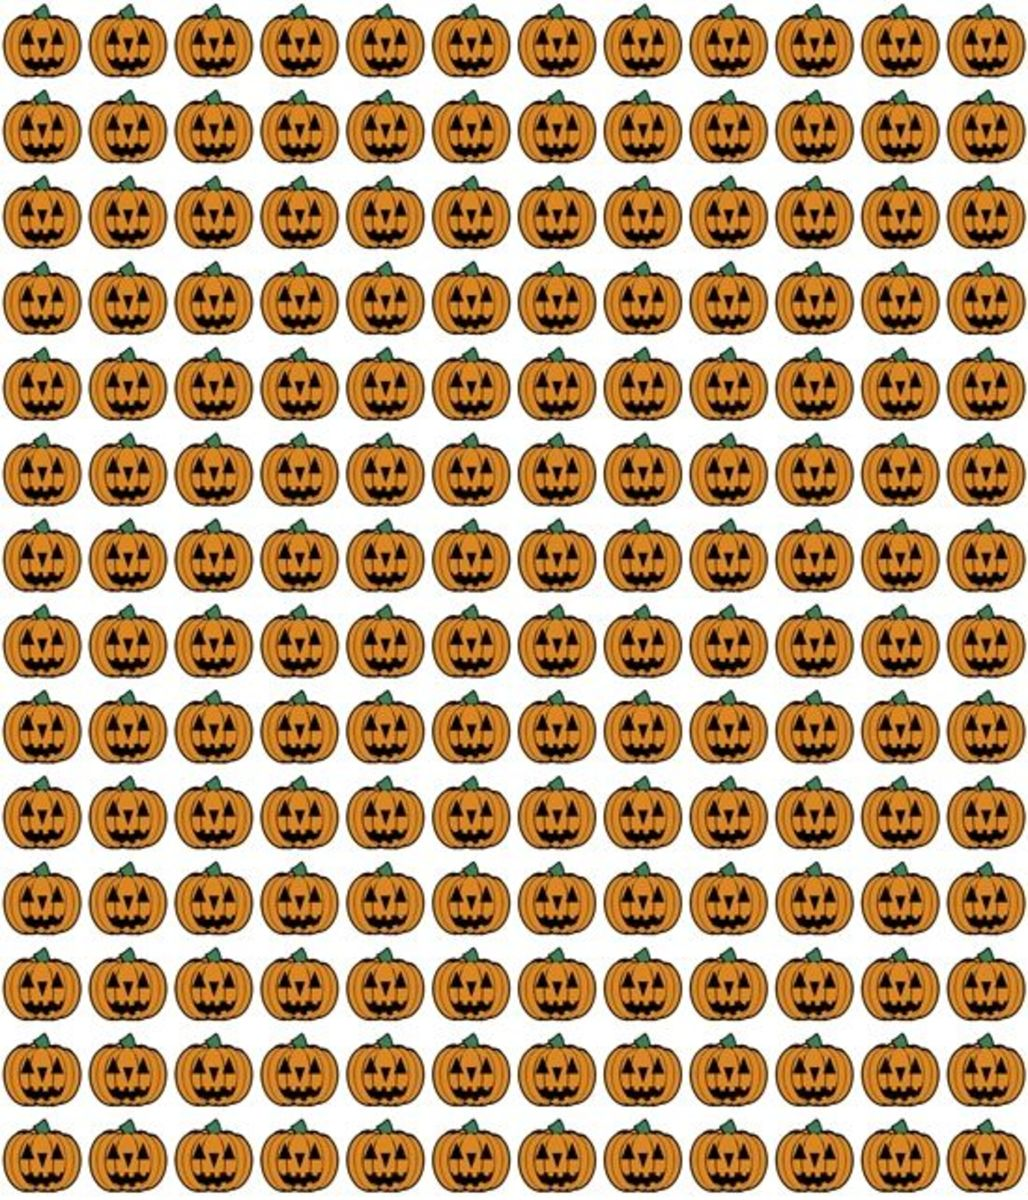 Jack-o-Lanterns pattern Halloween printable.